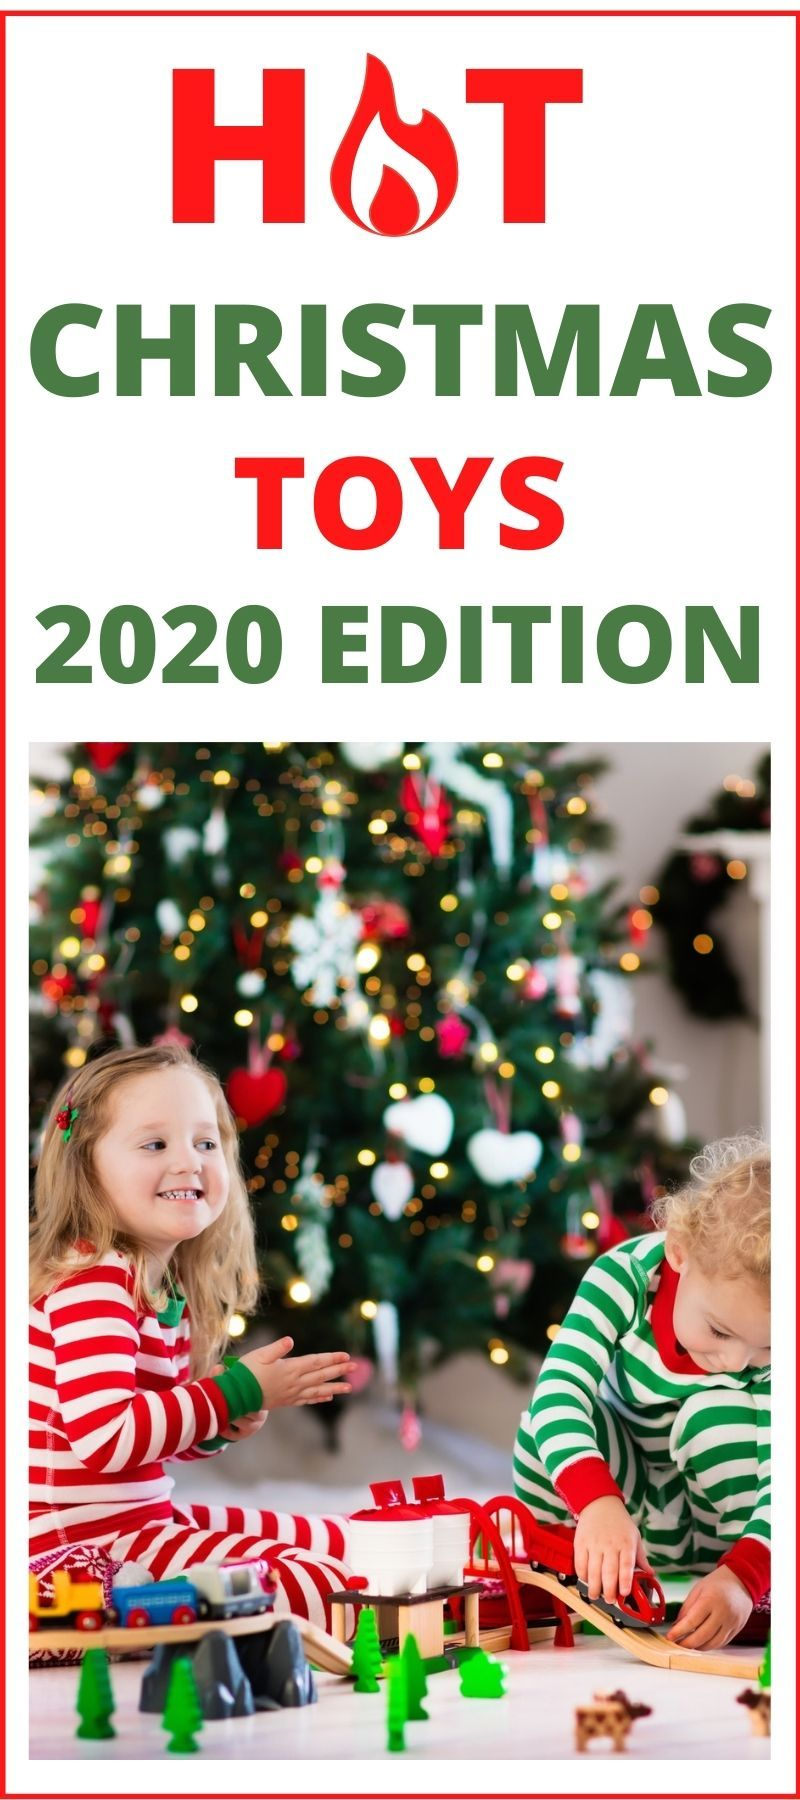 2020 Toys That Every Kid Wants For Christmas Top Christmas Toys 2020   Here Are The Toys Kids Want This